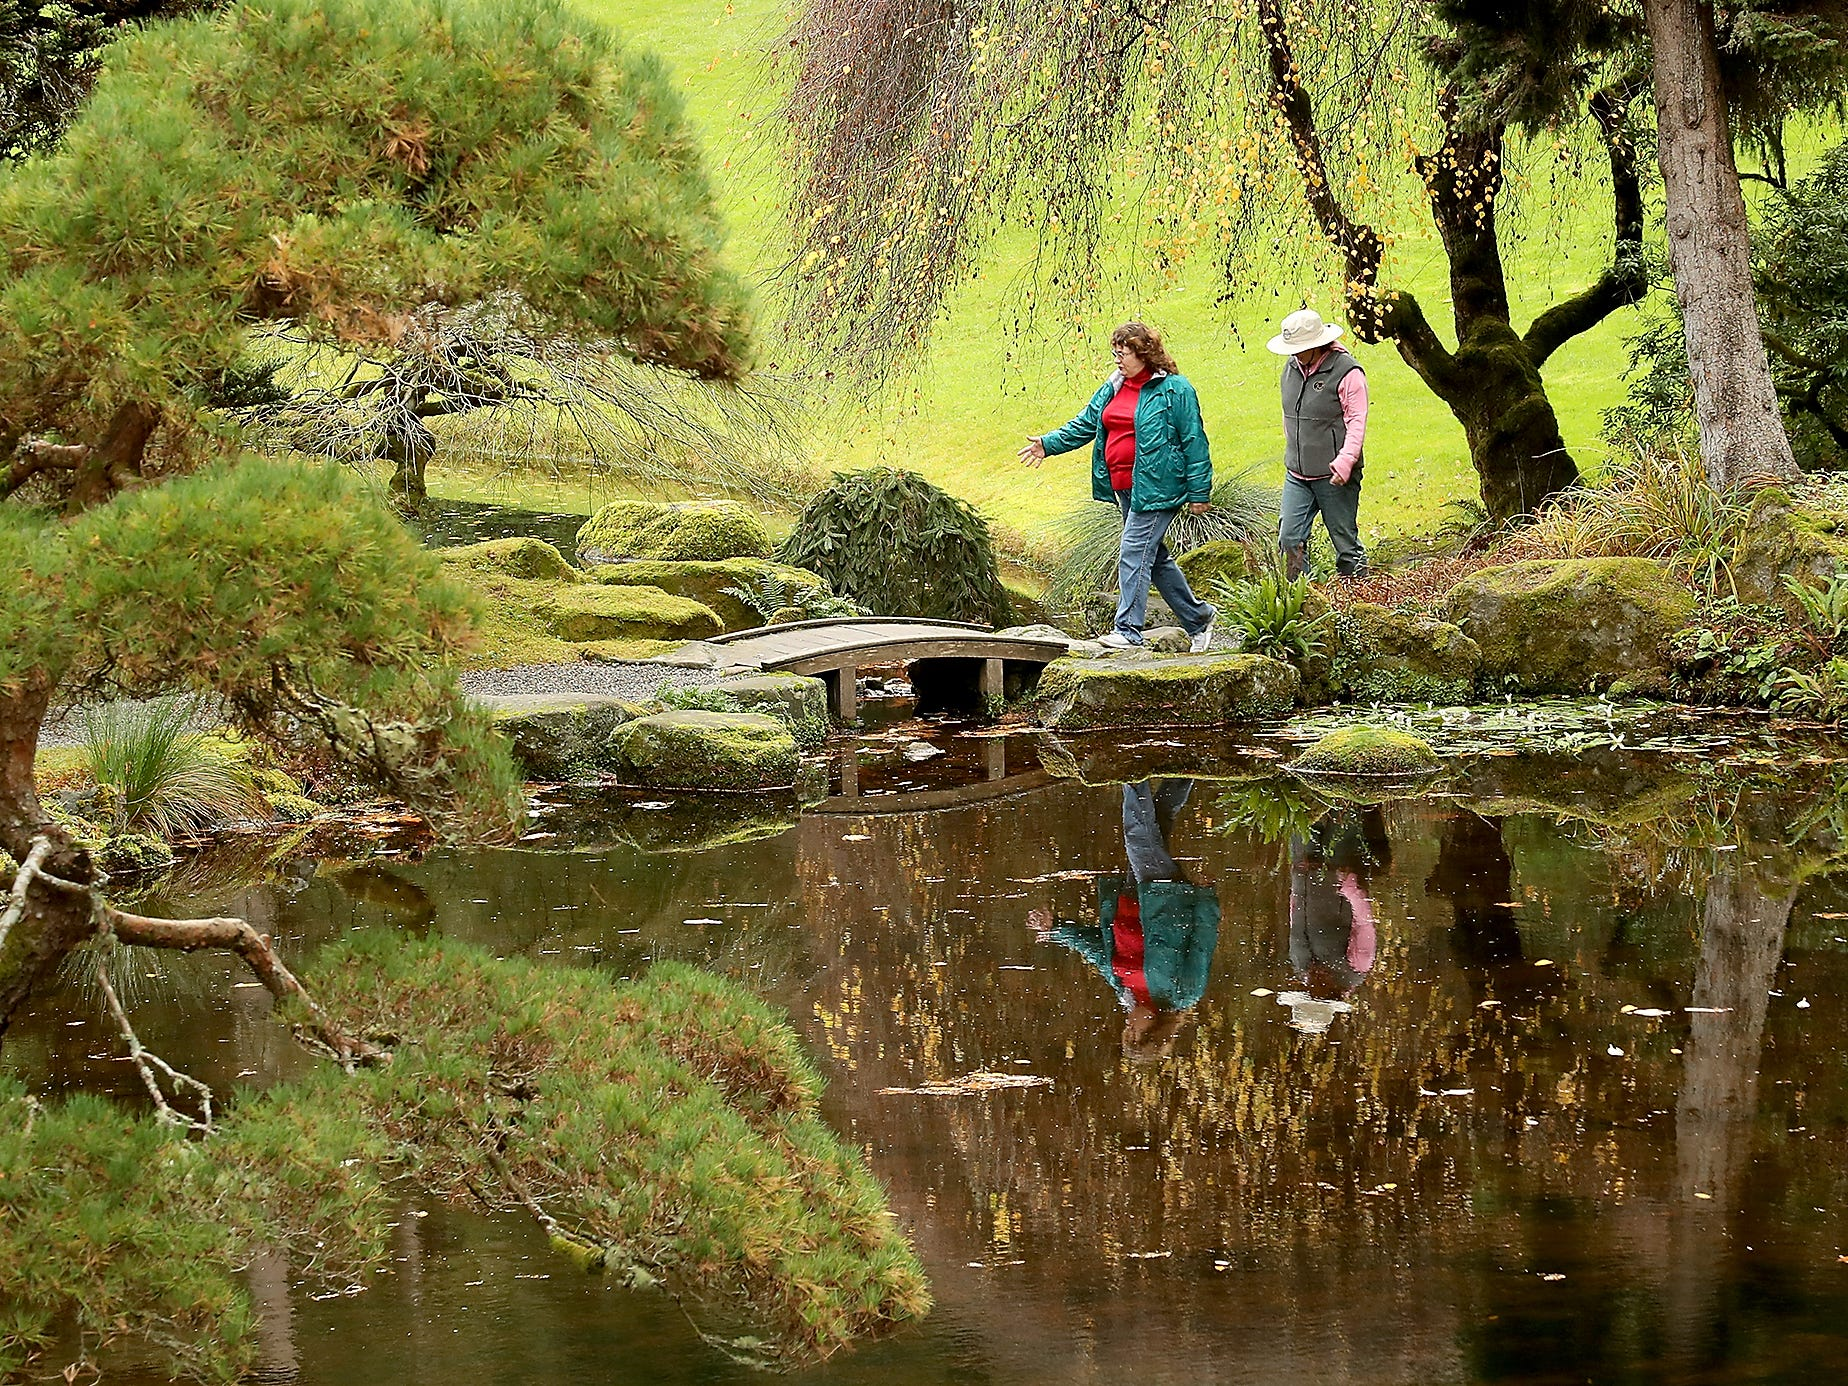 Flo Garetson and Sarah Slotten, both of Suquamish, walk through the Japanese Garden in Bloedel Reserve on Friday, November 16, 2018. The two are regular visitors to Bloedel and walk the trails every Friday rain or shine.